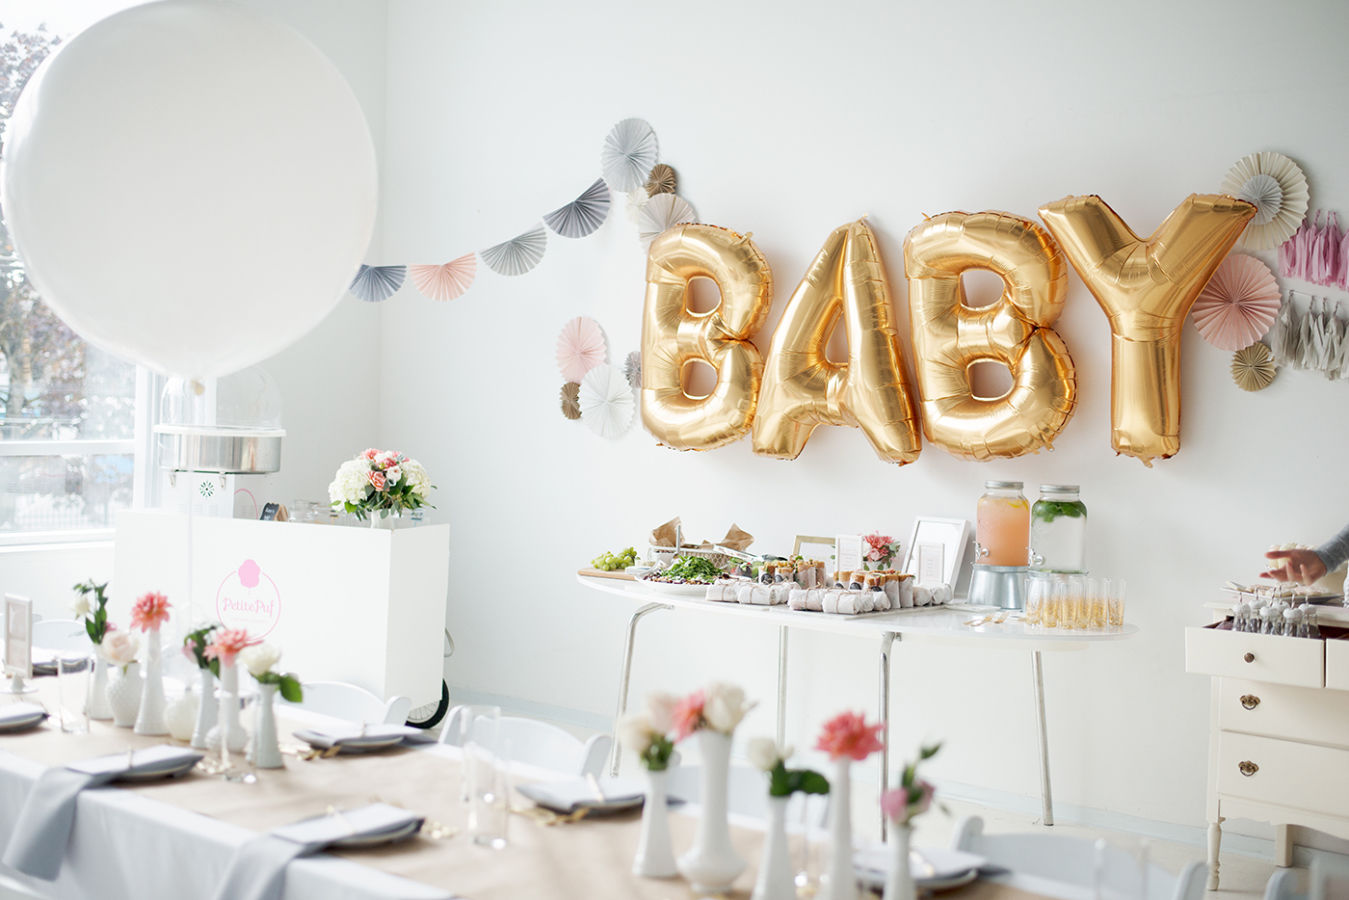 gold foil baby balloons pictures photos and images for. Black Bedroom Furniture Sets. Home Design Ideas